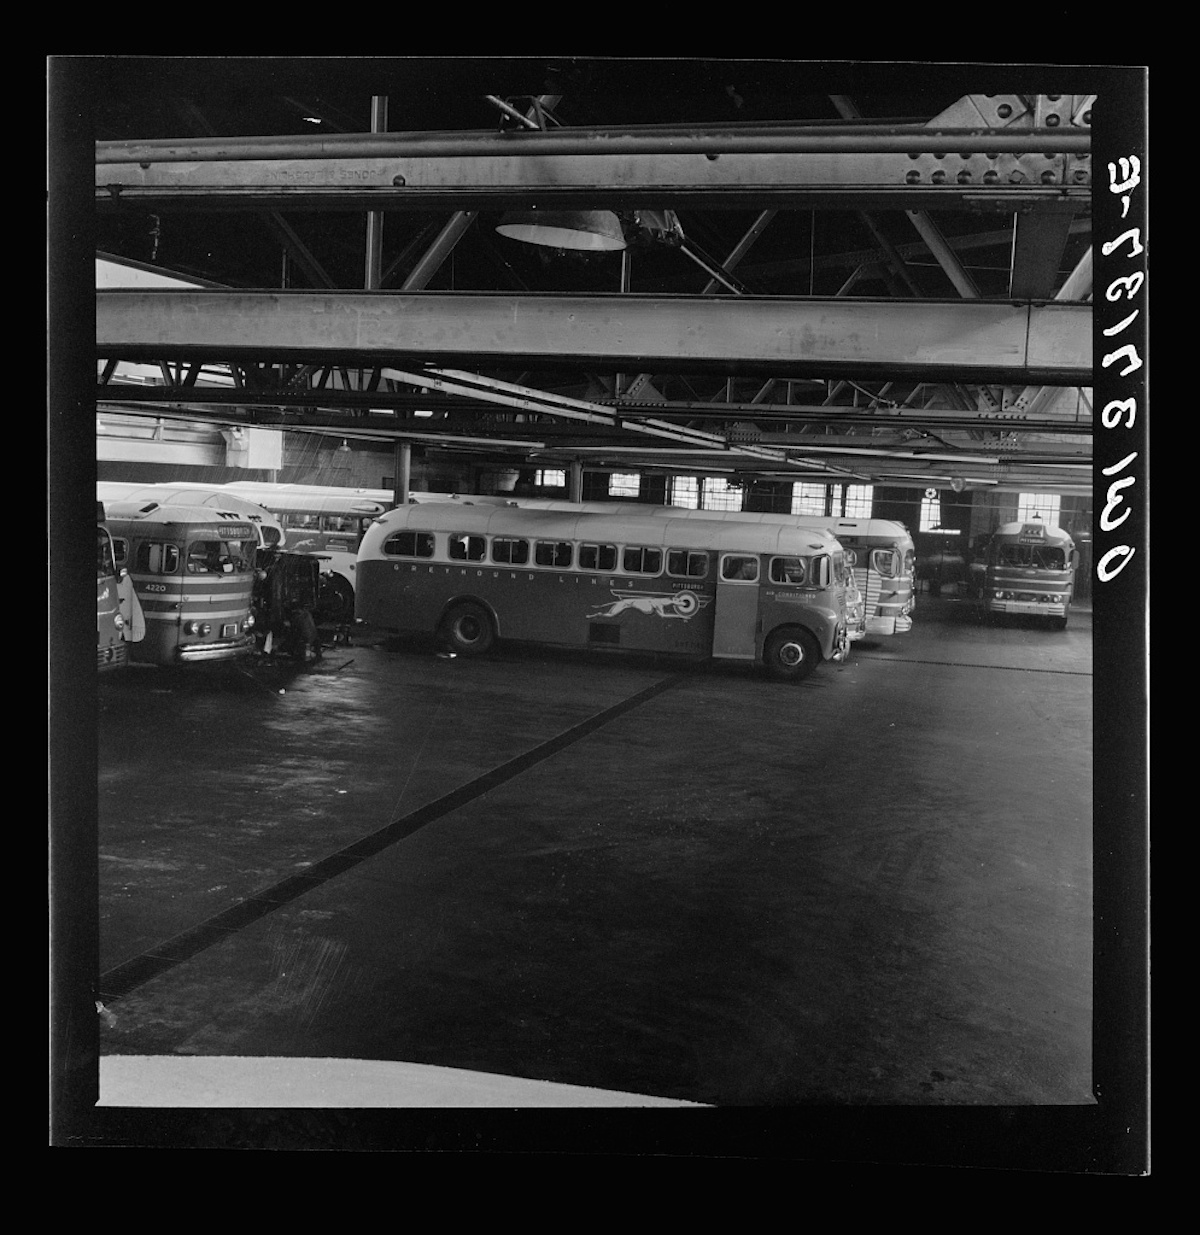 Pittsburgh, Pennsylvania. The Greyhound bus garage